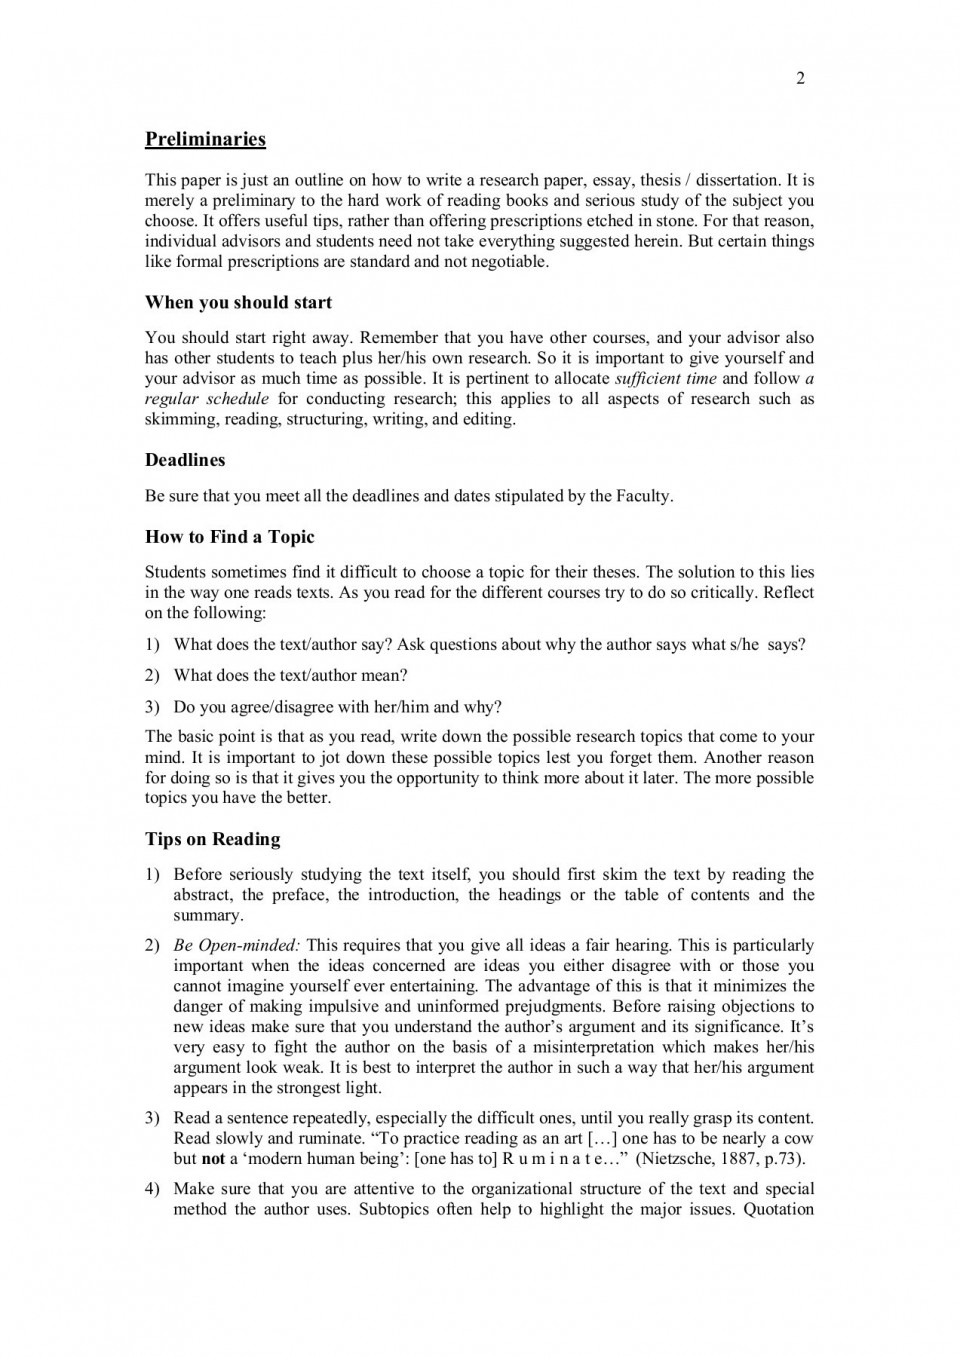 003 Research Paper Philosophy Of Religion Topics Awful 960